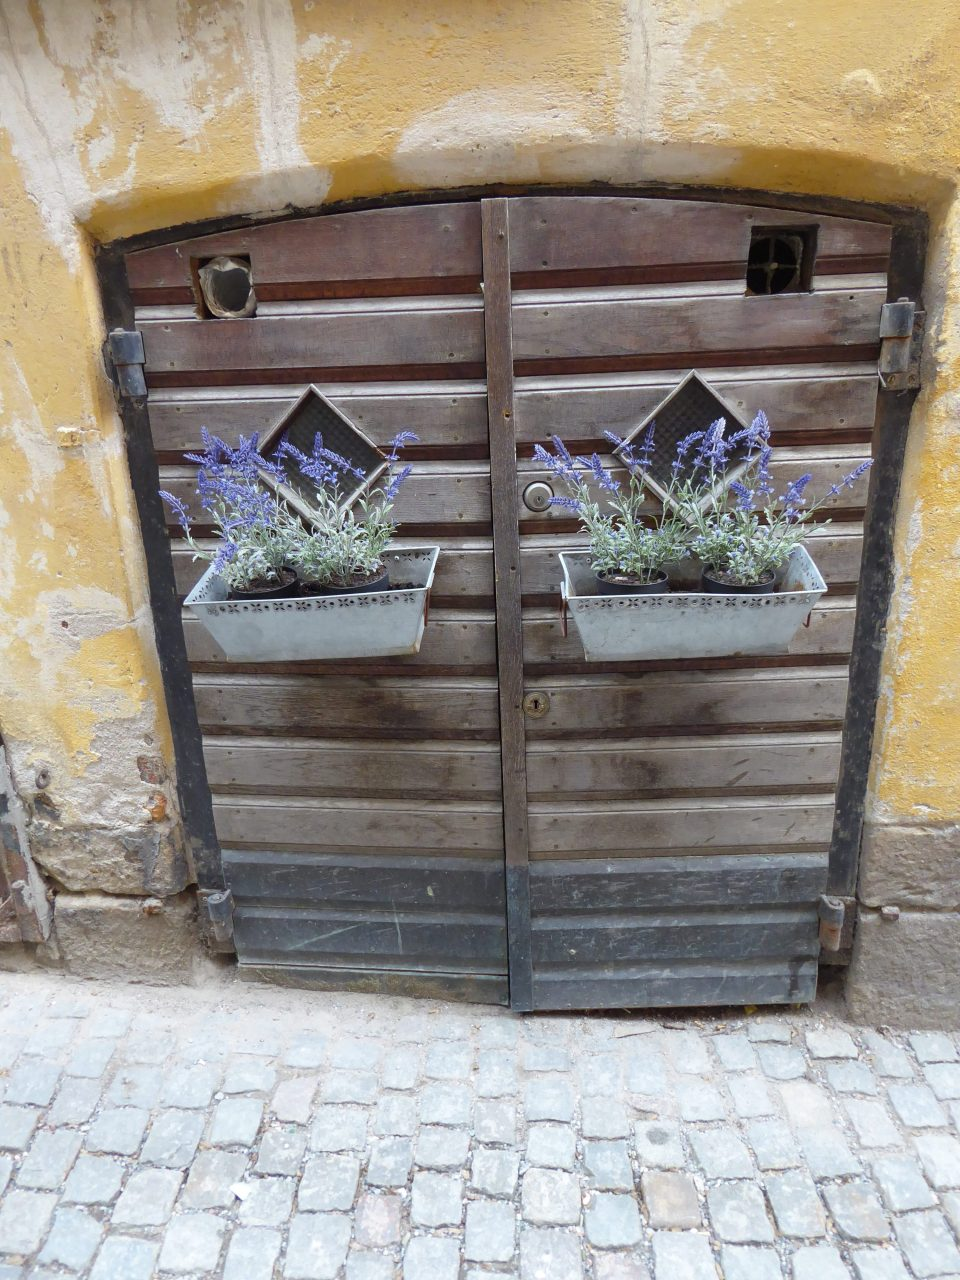 Yellow building and brown Doorway with purple flowers in baskets, Gamla Stan, Stockholm